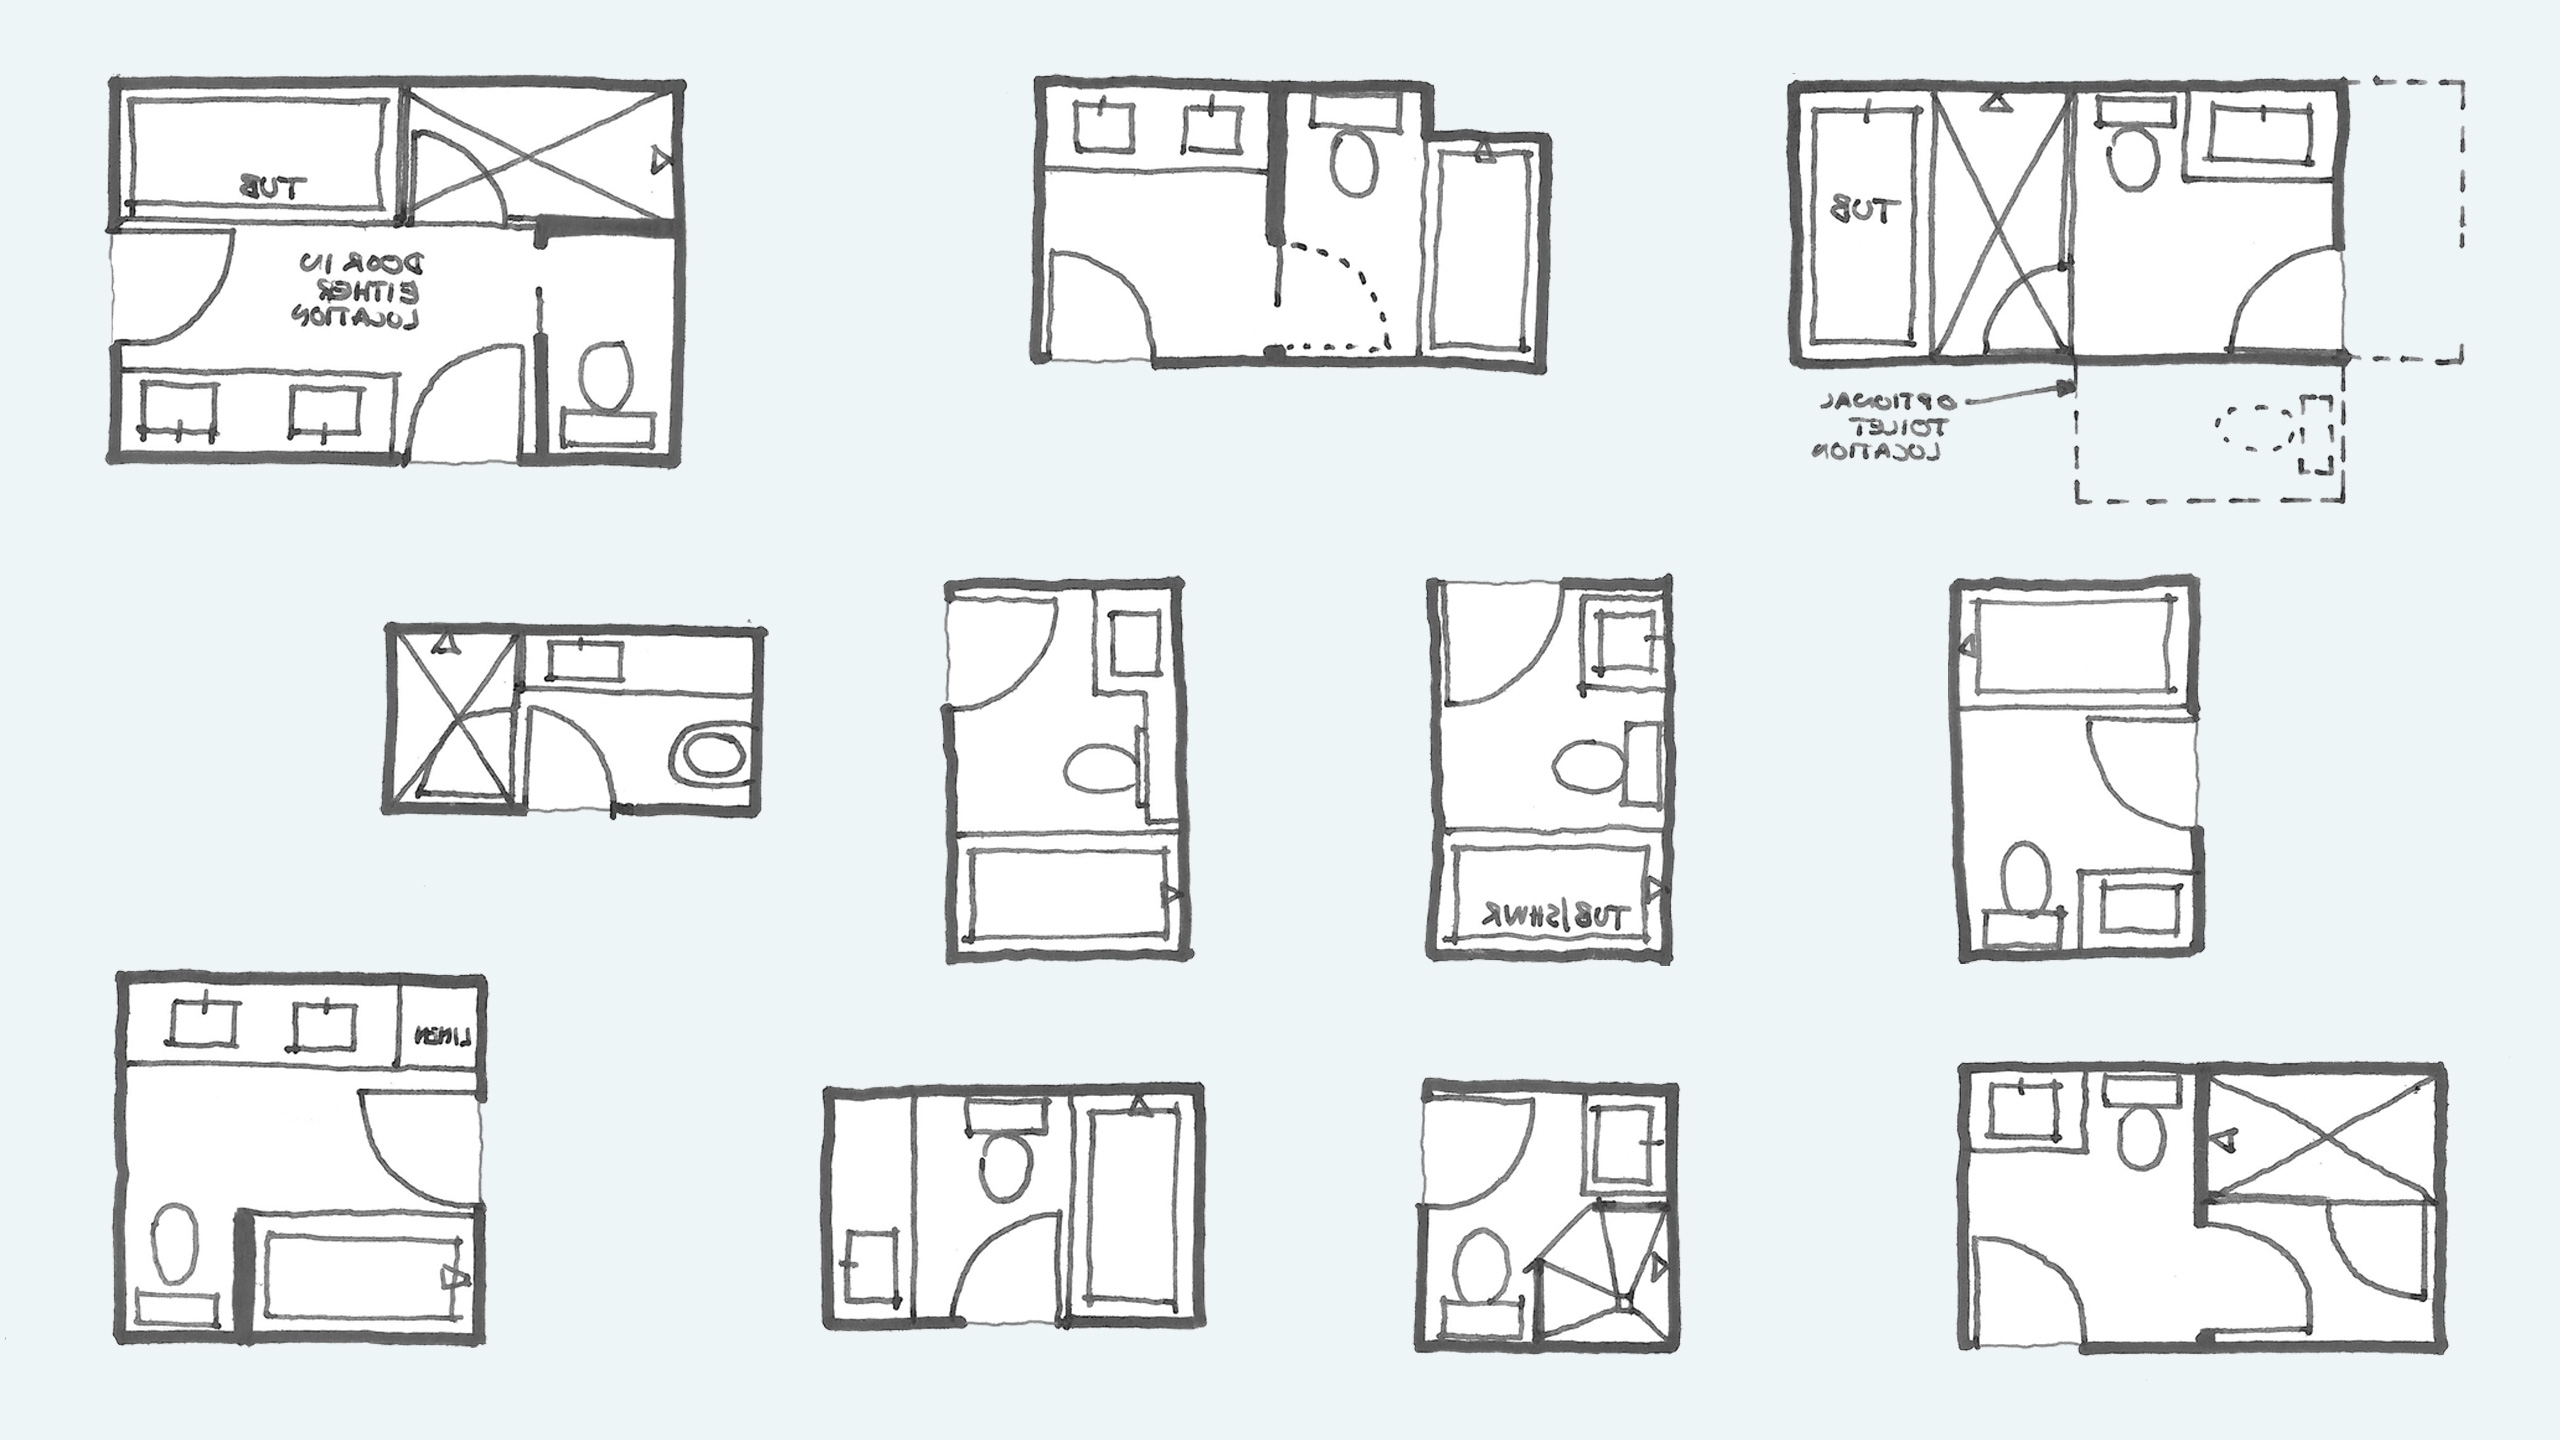 Common Bathroom Floor Plans: Rules Of Thumb For Layout 5Ft By 5Ft Bathroom Design